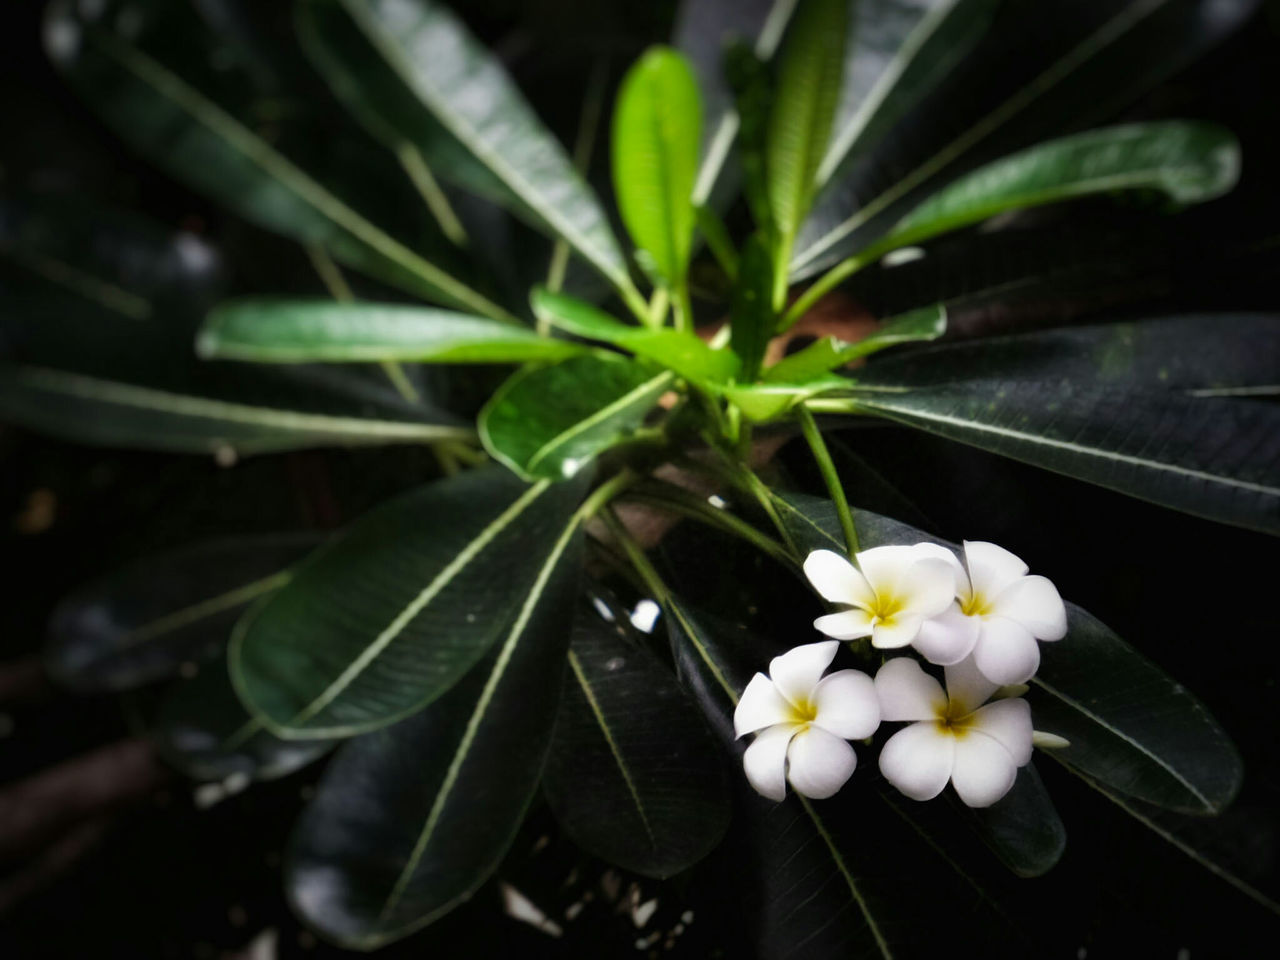 Close-Up Of White Frangipanis Blooming On Plant